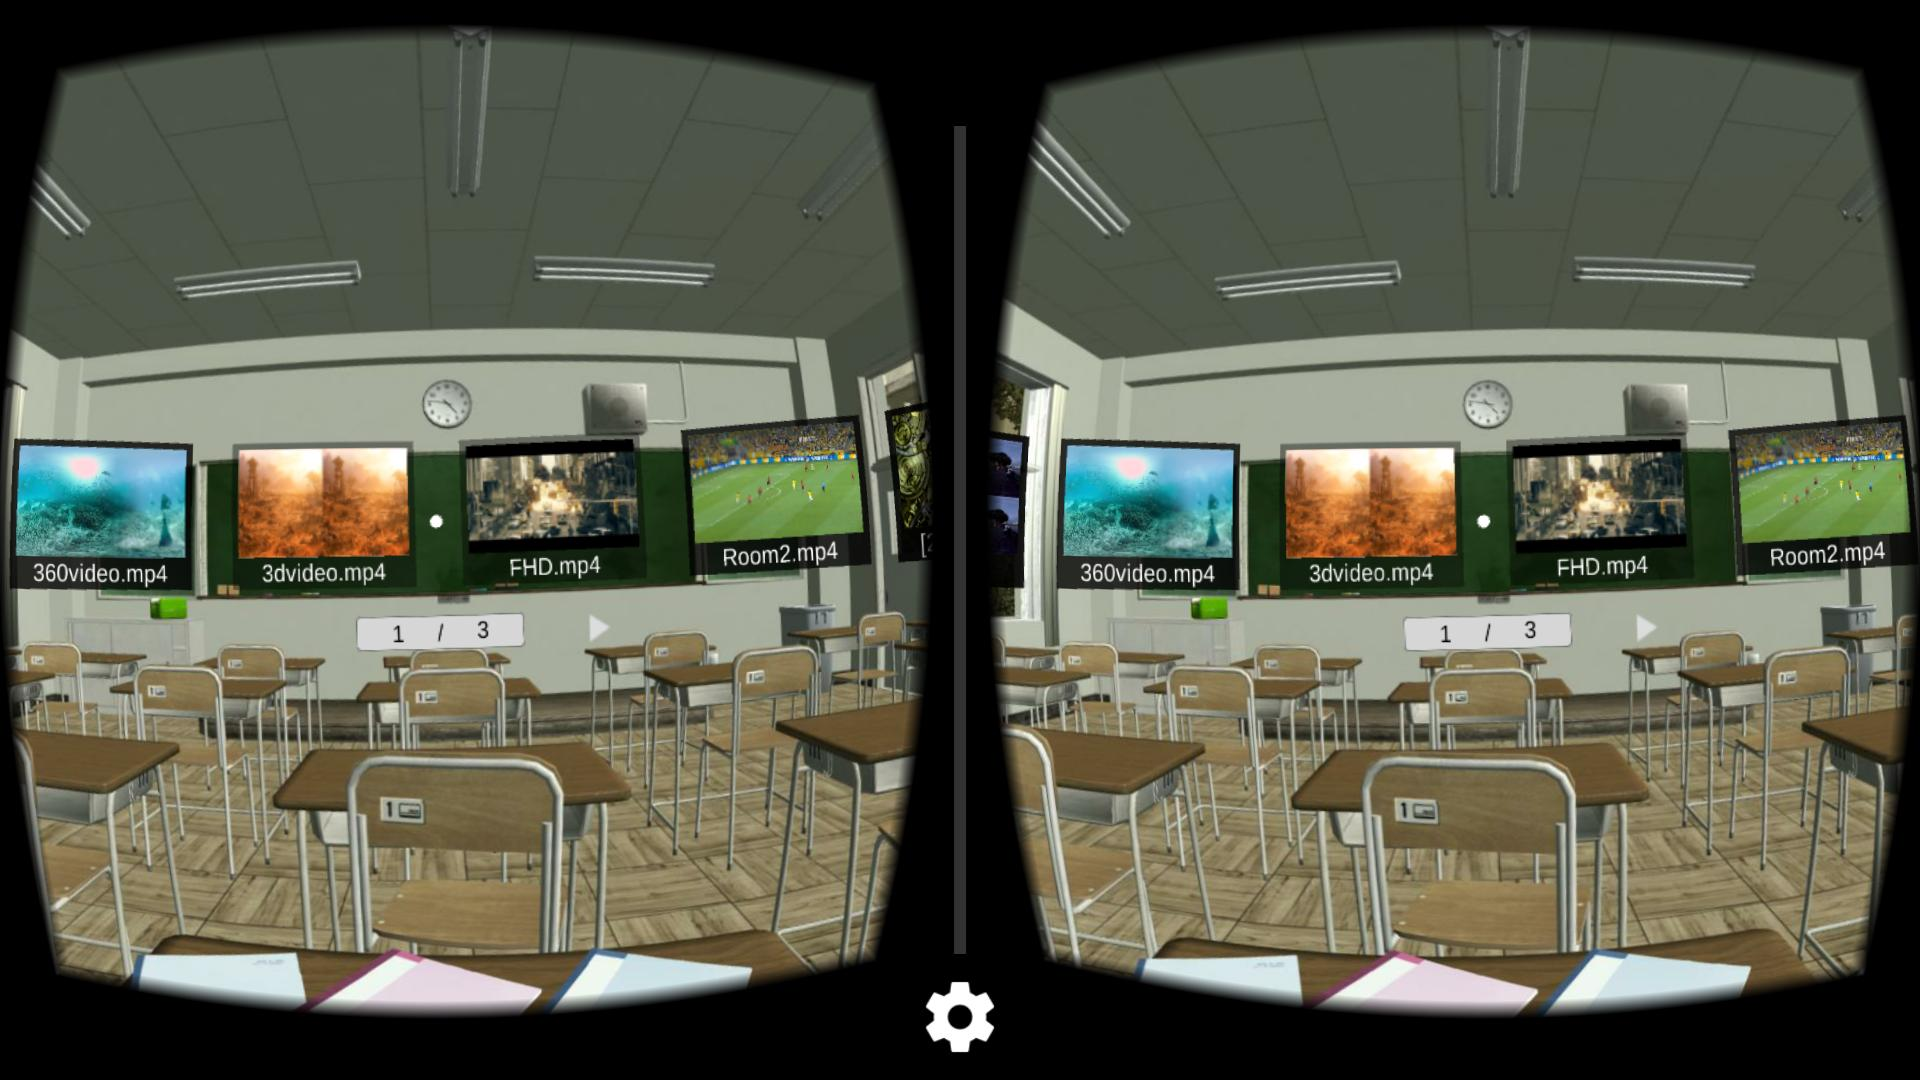 Vu 360 vr 360 video player for android apk download.